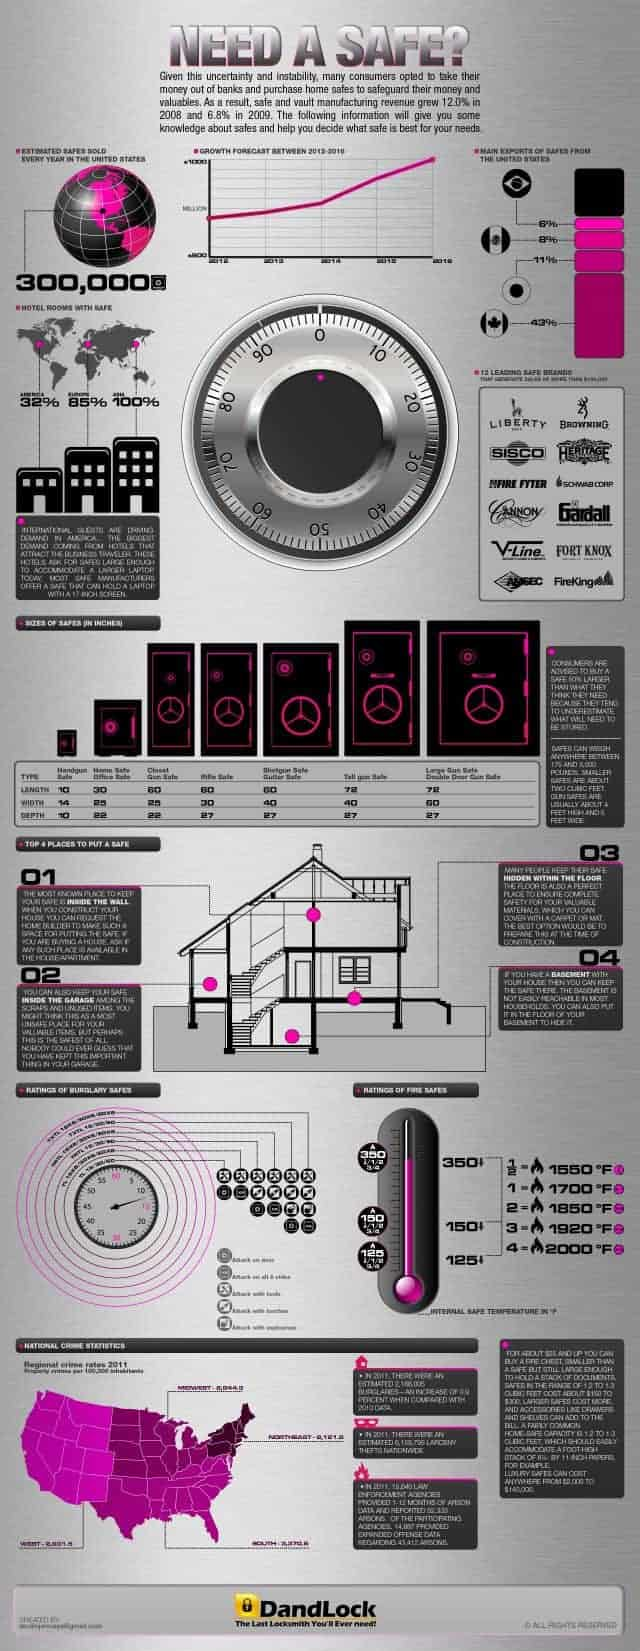 NEED-A-SAFE_INFOGRAPHIC-640x1651